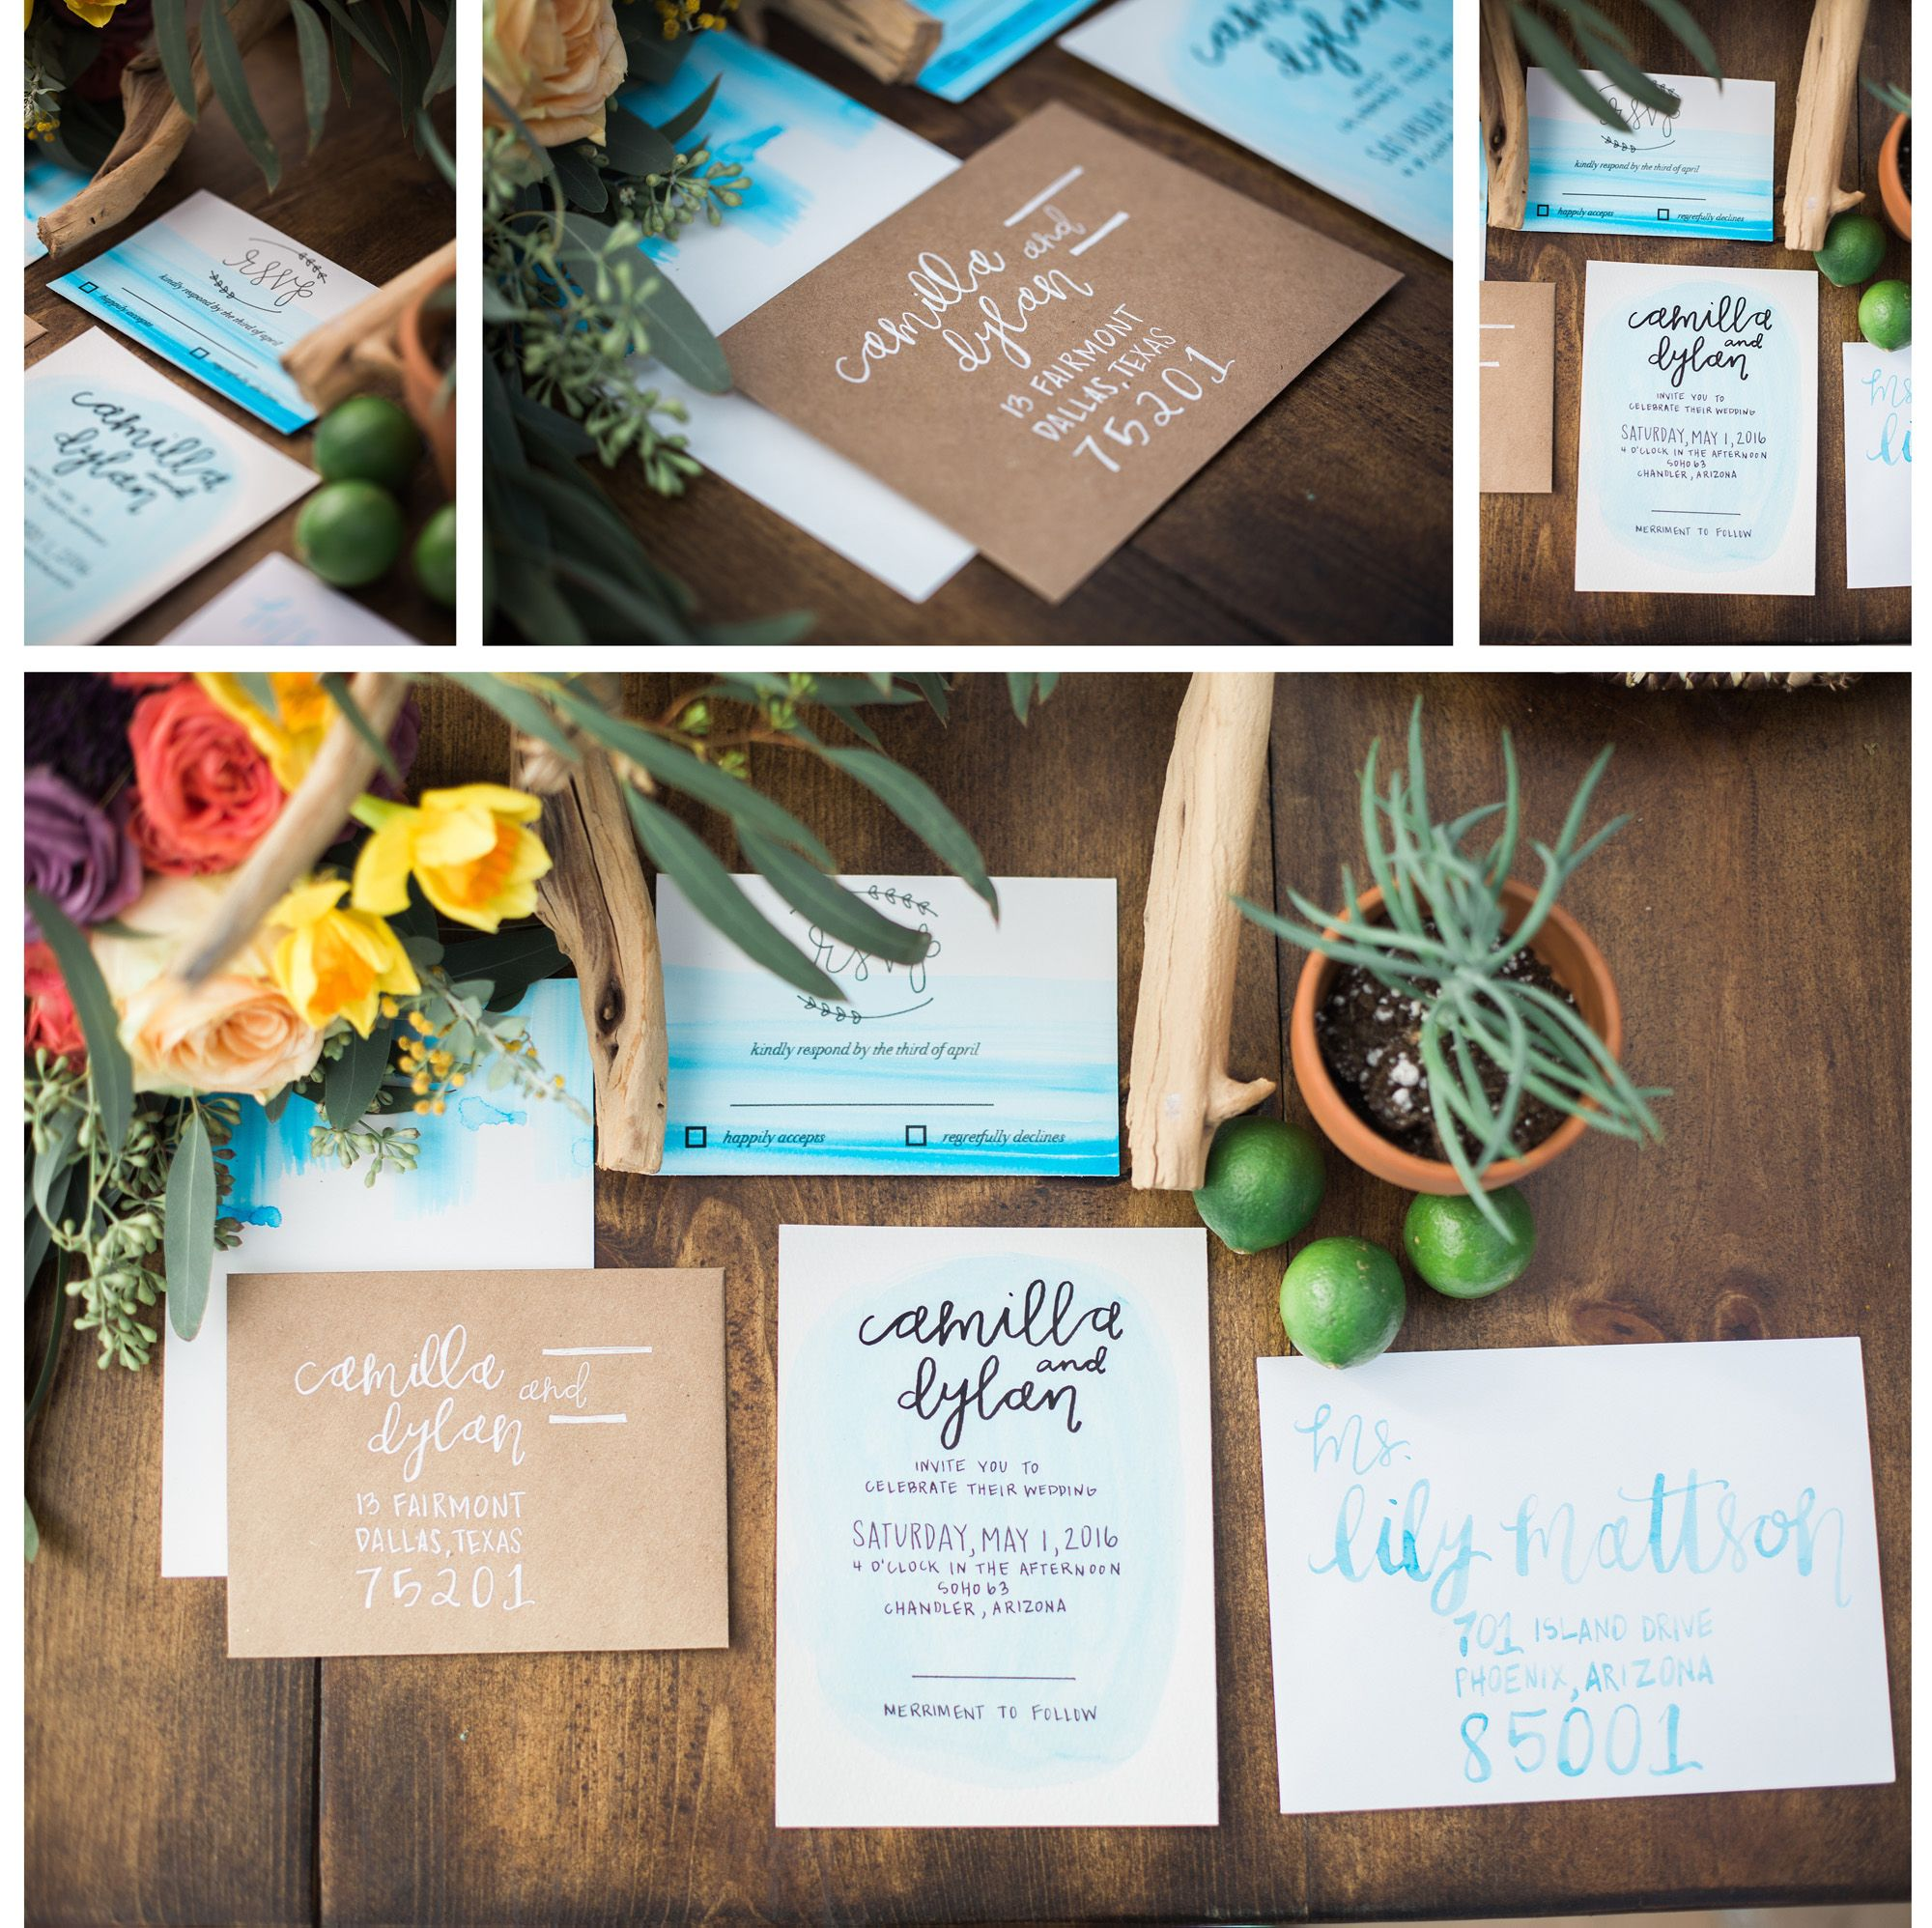 Watercolor southwest wedding invitations the creative team venue and furniture rentalstremaine ranch floral design bloom and blueprint photography denise karis event planner the amburgeys invitations tenn letters malvernweather Image collections